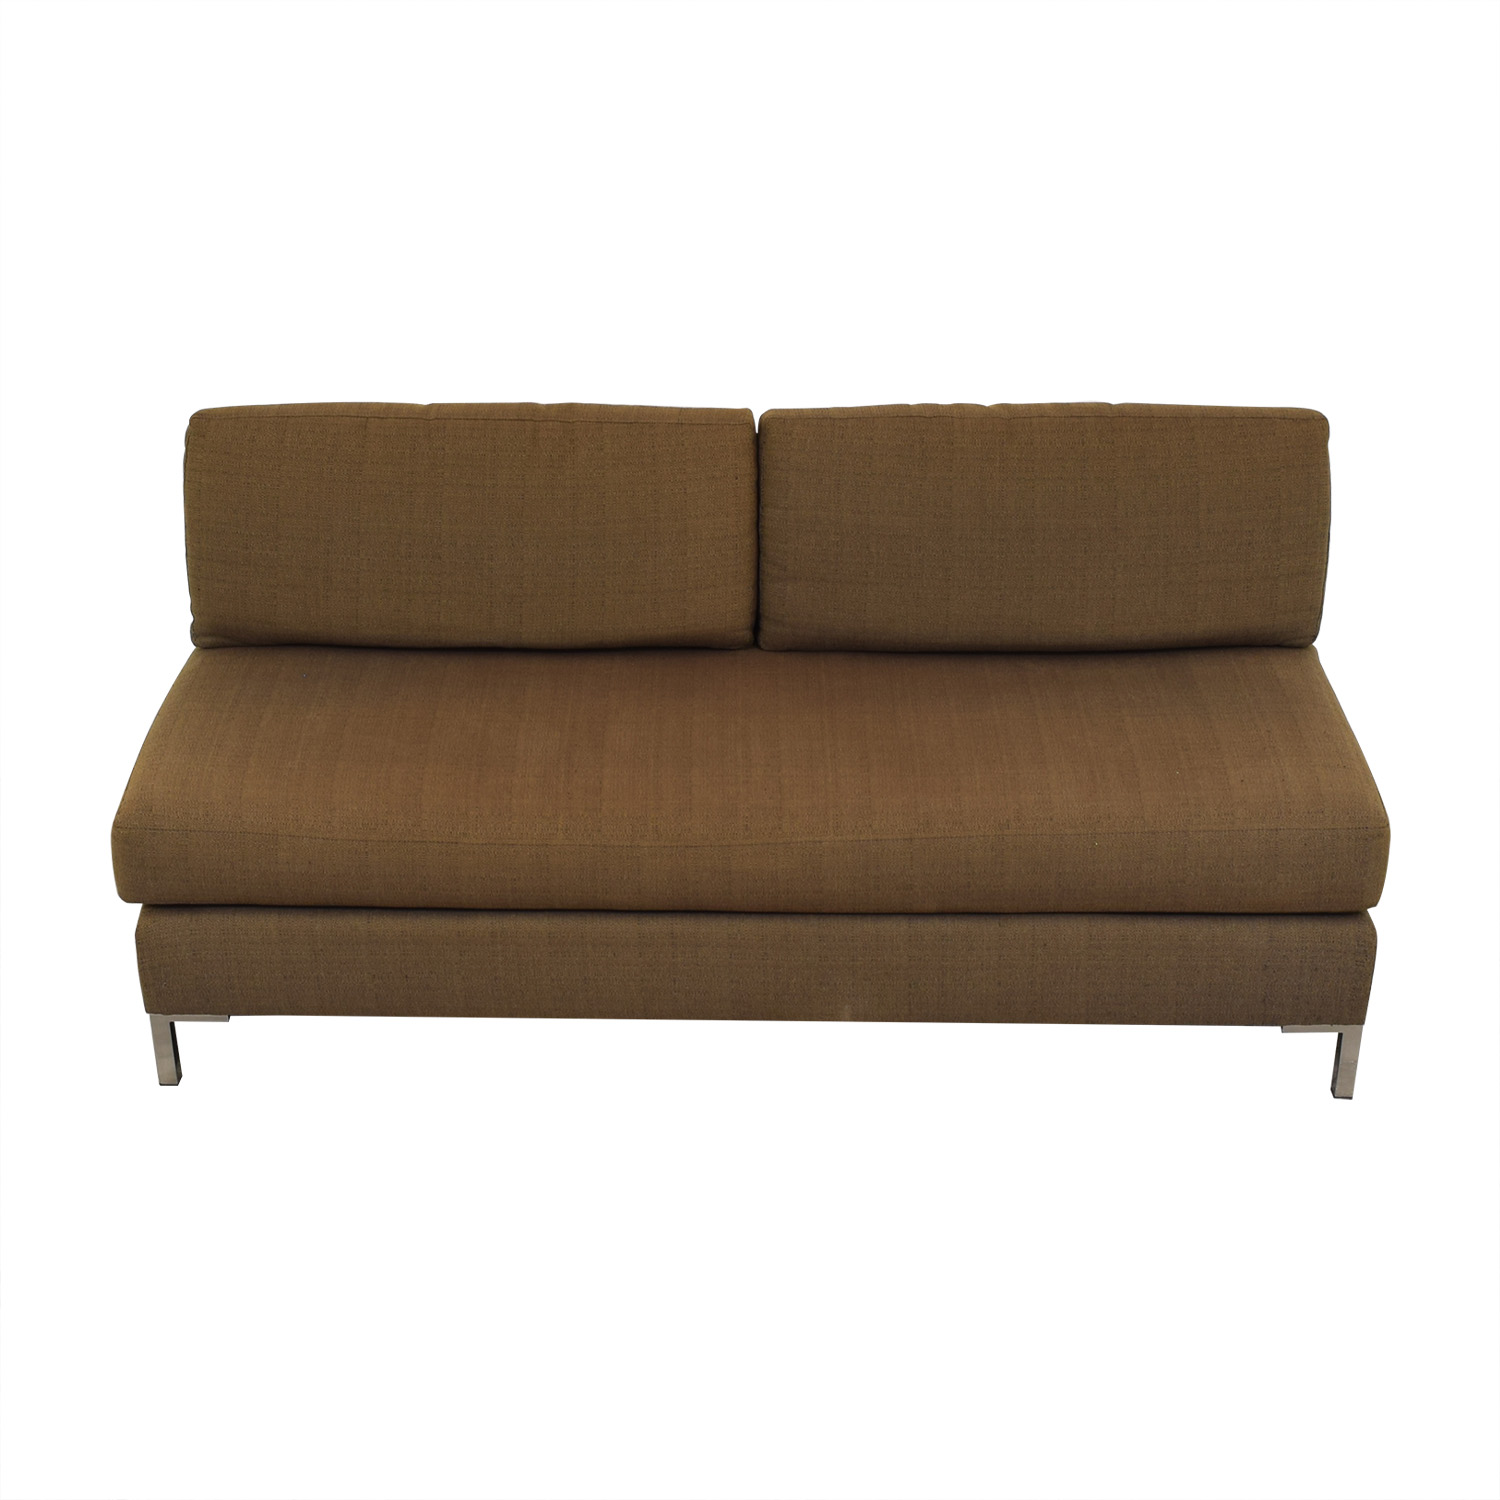 West Elm Armless Sofa / Sofas